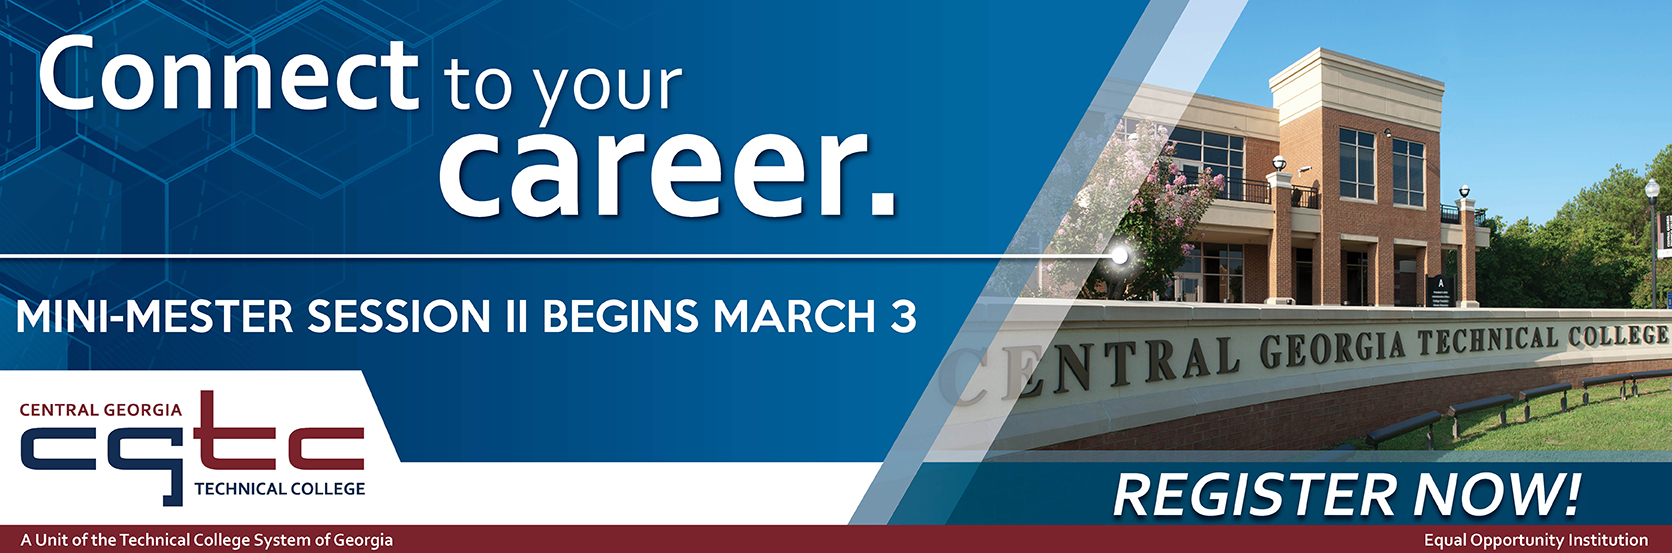 Mini-Mester Session II Begins March 3, 2017. Earn full course credit in just eight weeks! Register now for classes!